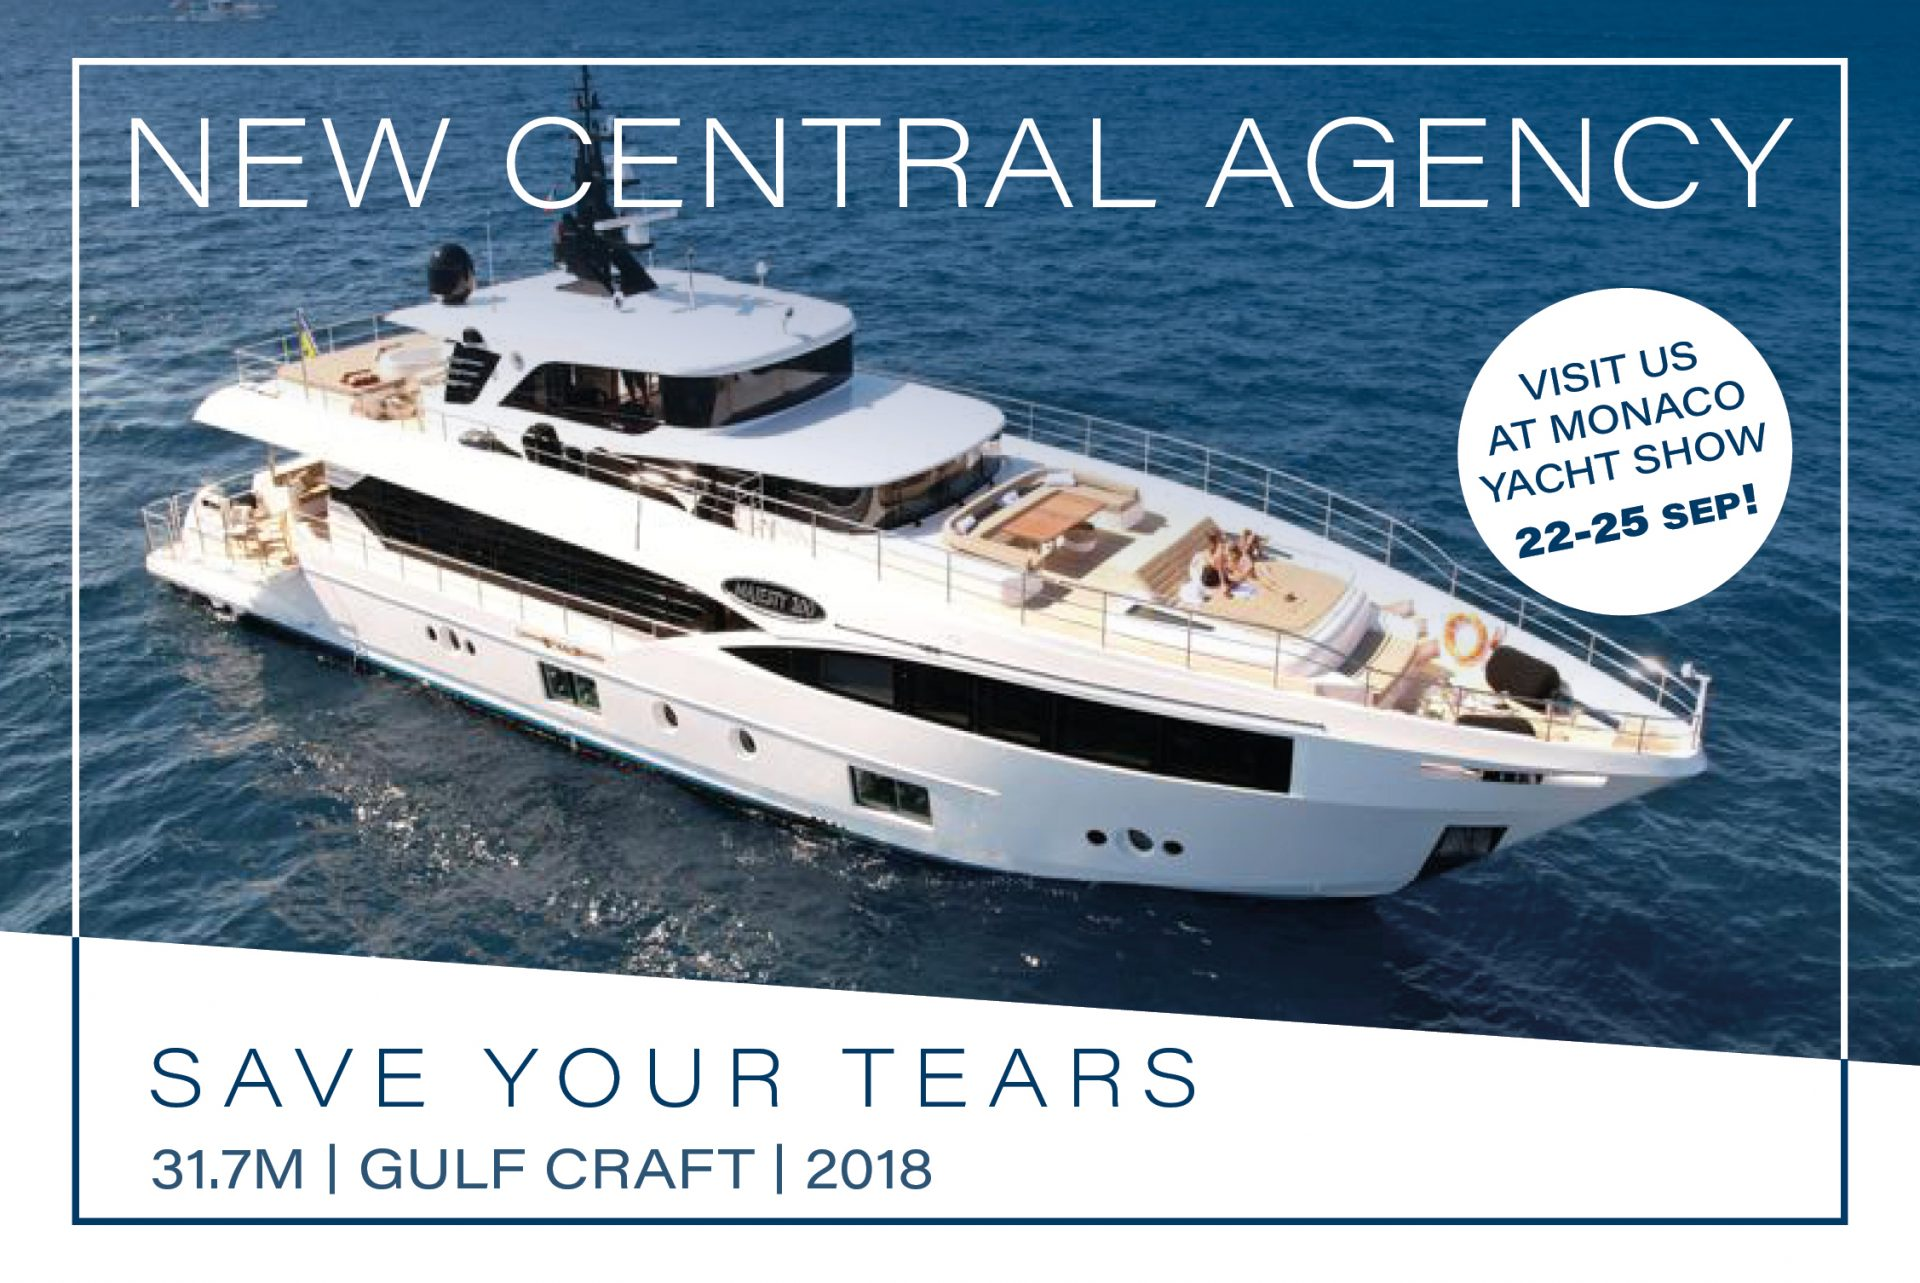 Save Your Tears at Monaco Yacht Show